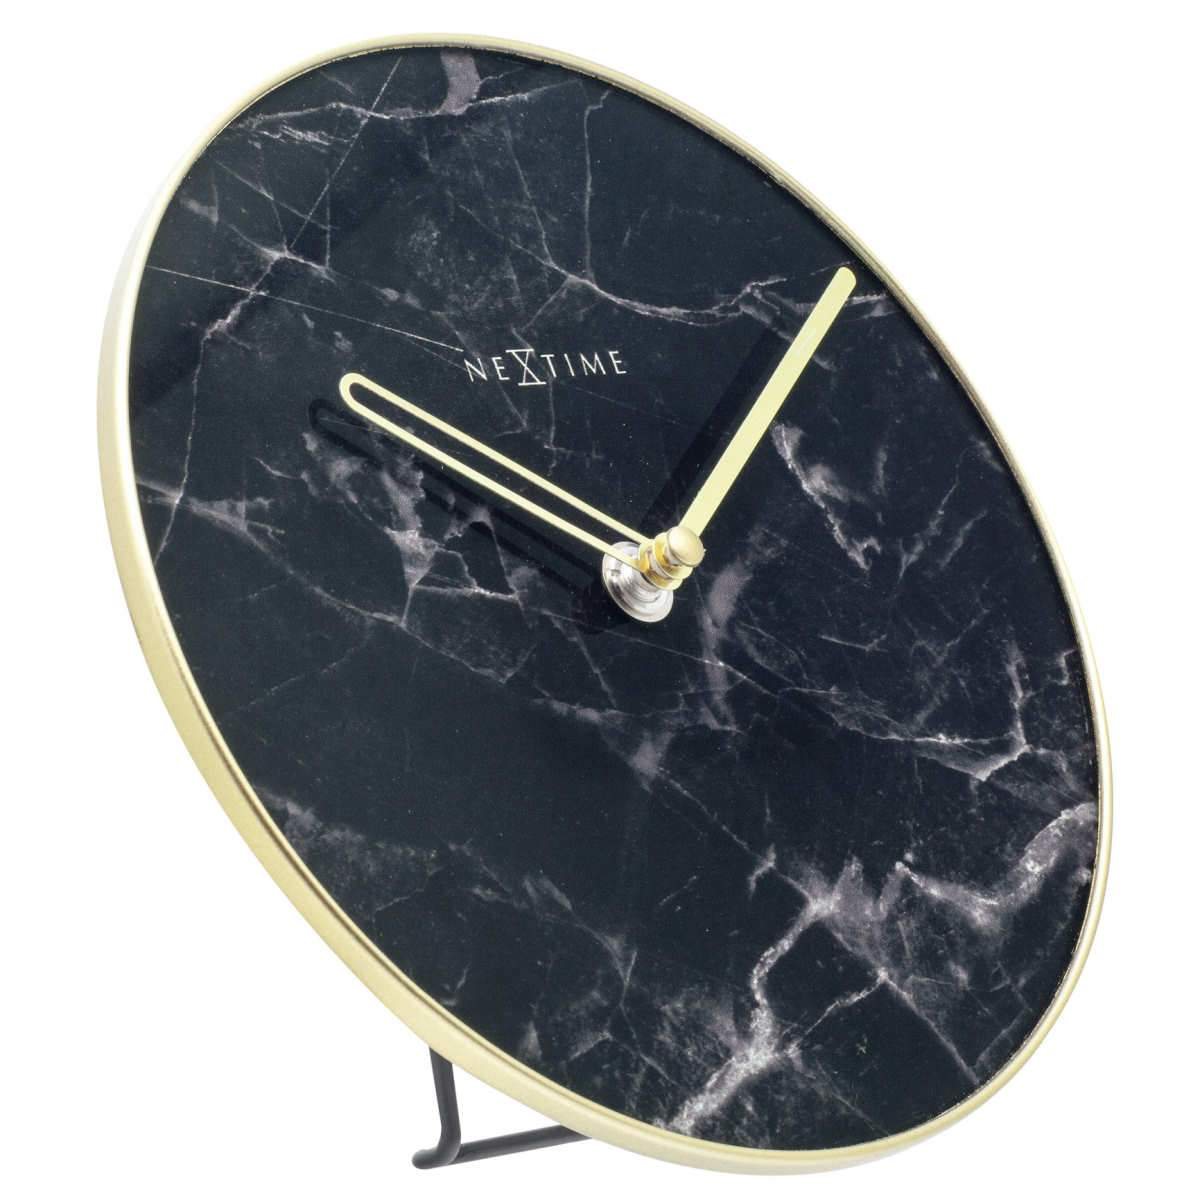 NeXtime Marble Glass Desk Clock Black and Gold 20cm 575222ZW 4